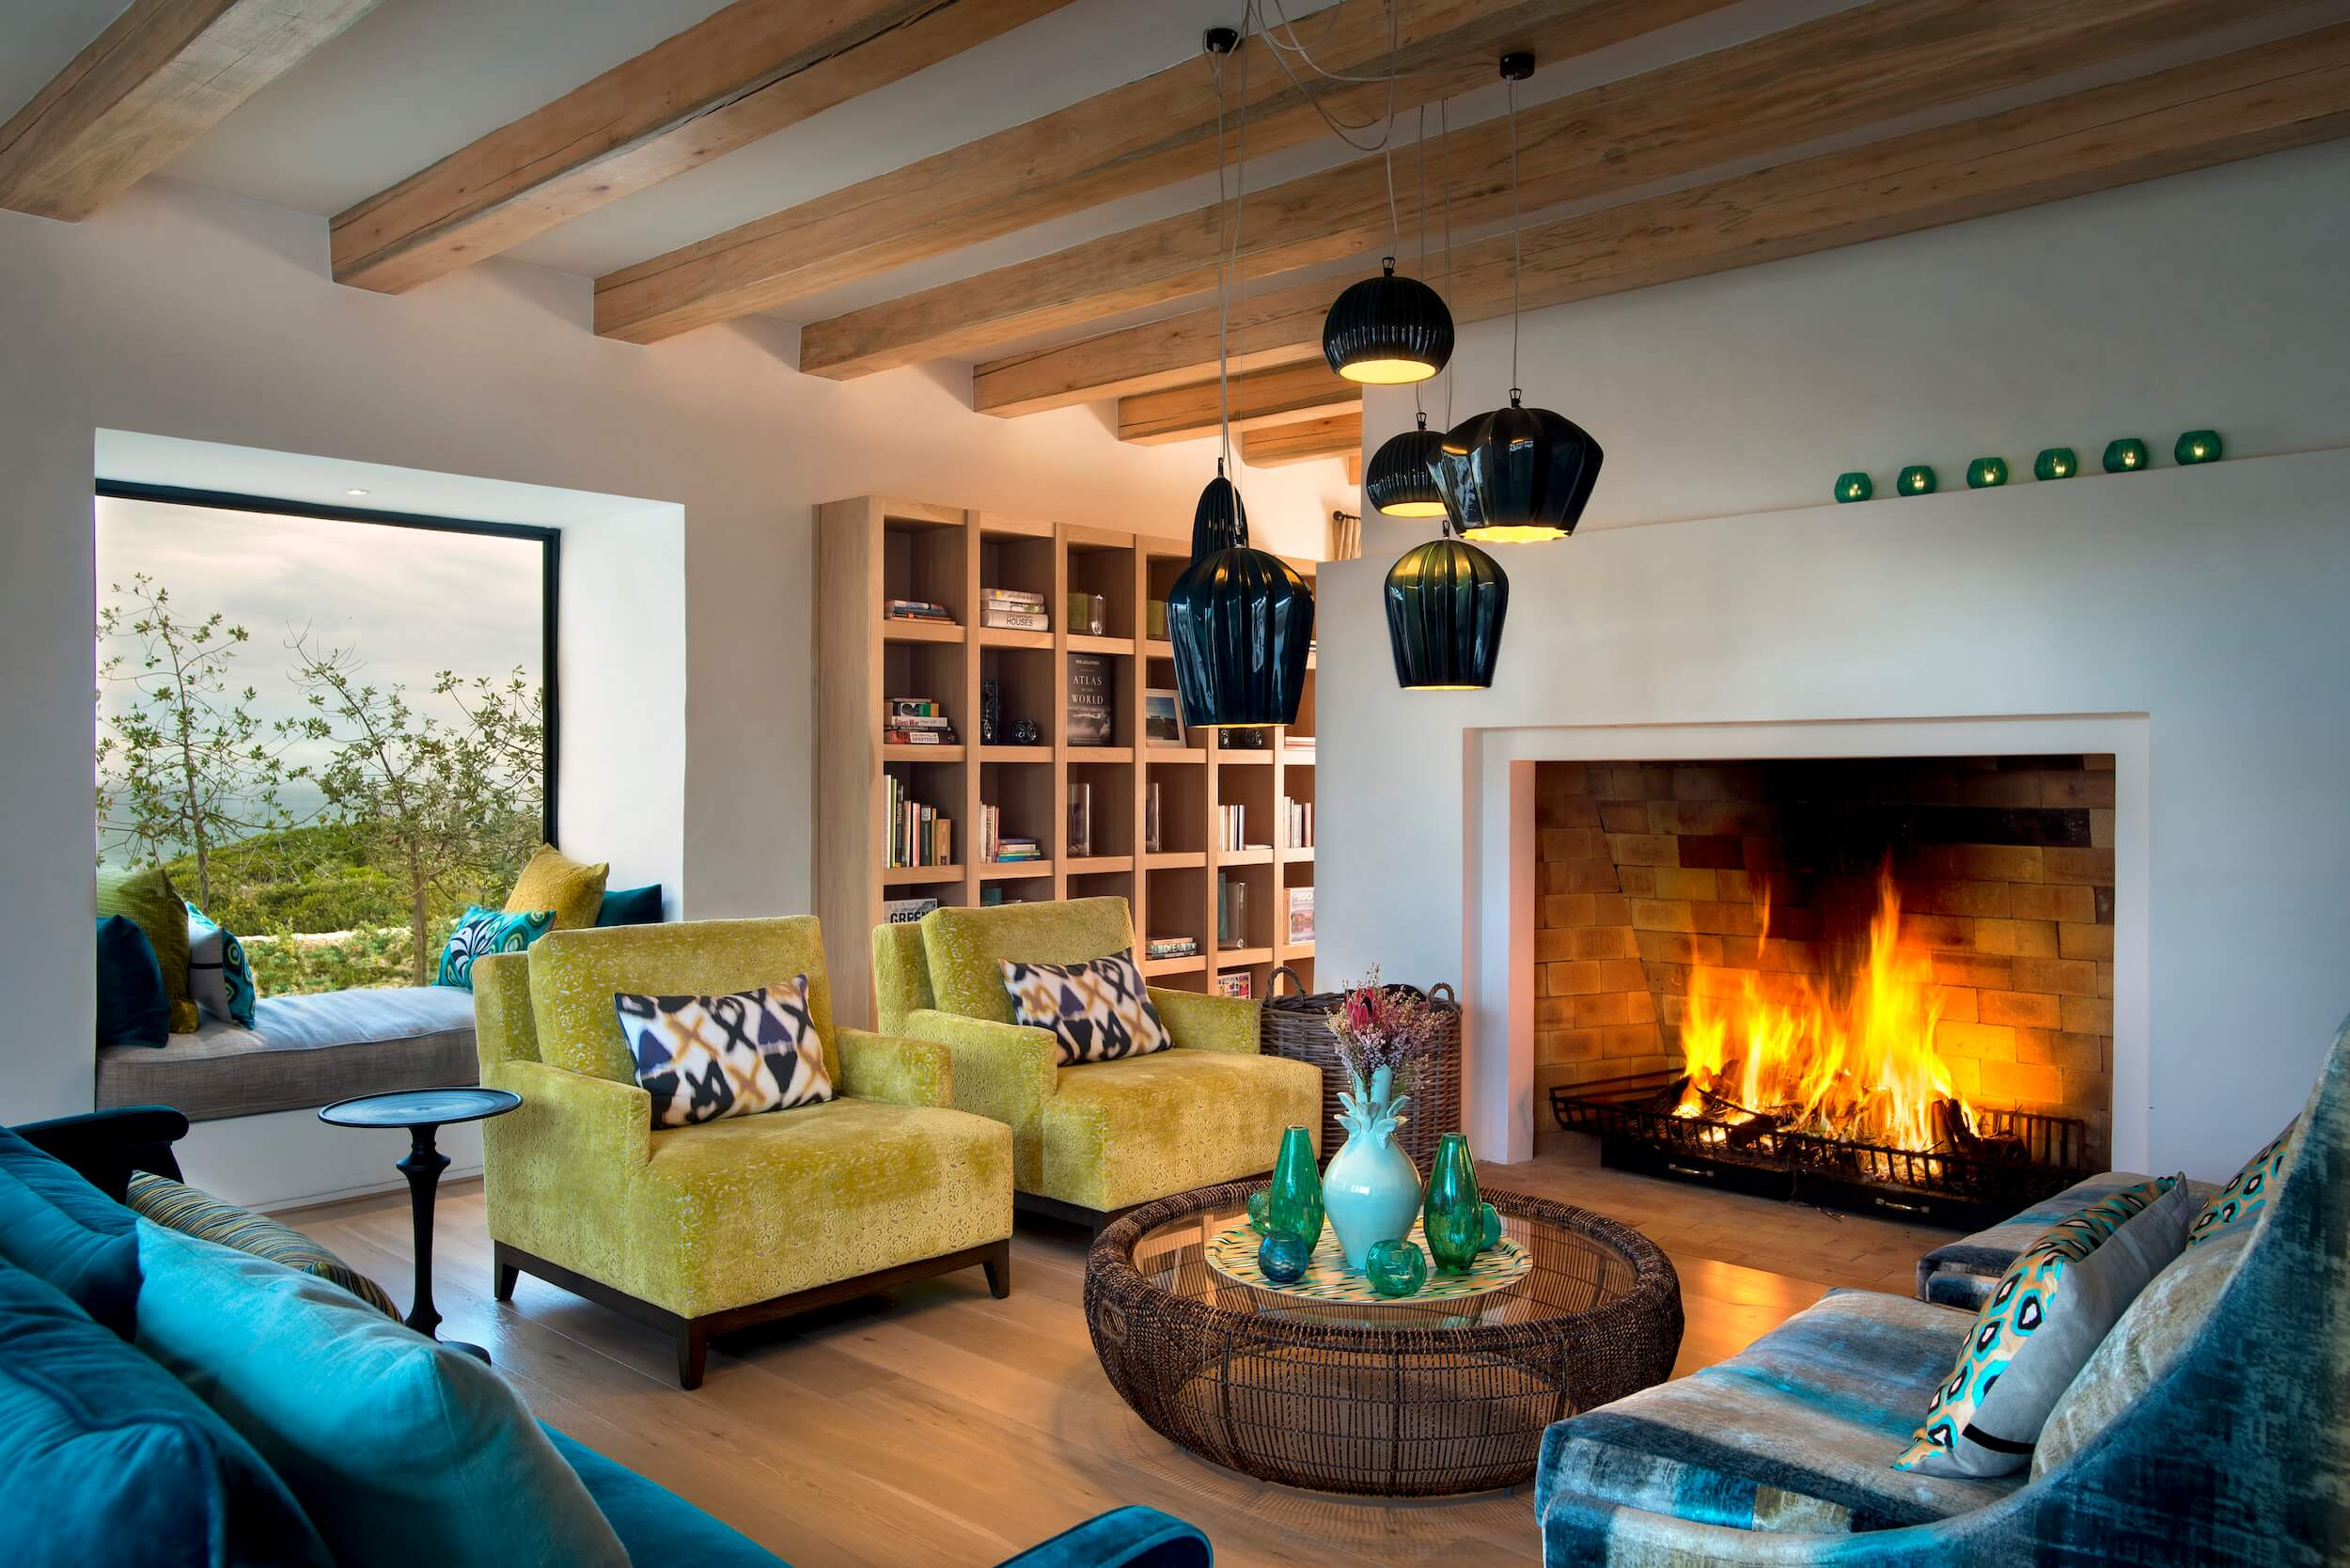 Morukuru Ocean House - lounge with fireplace.JPG